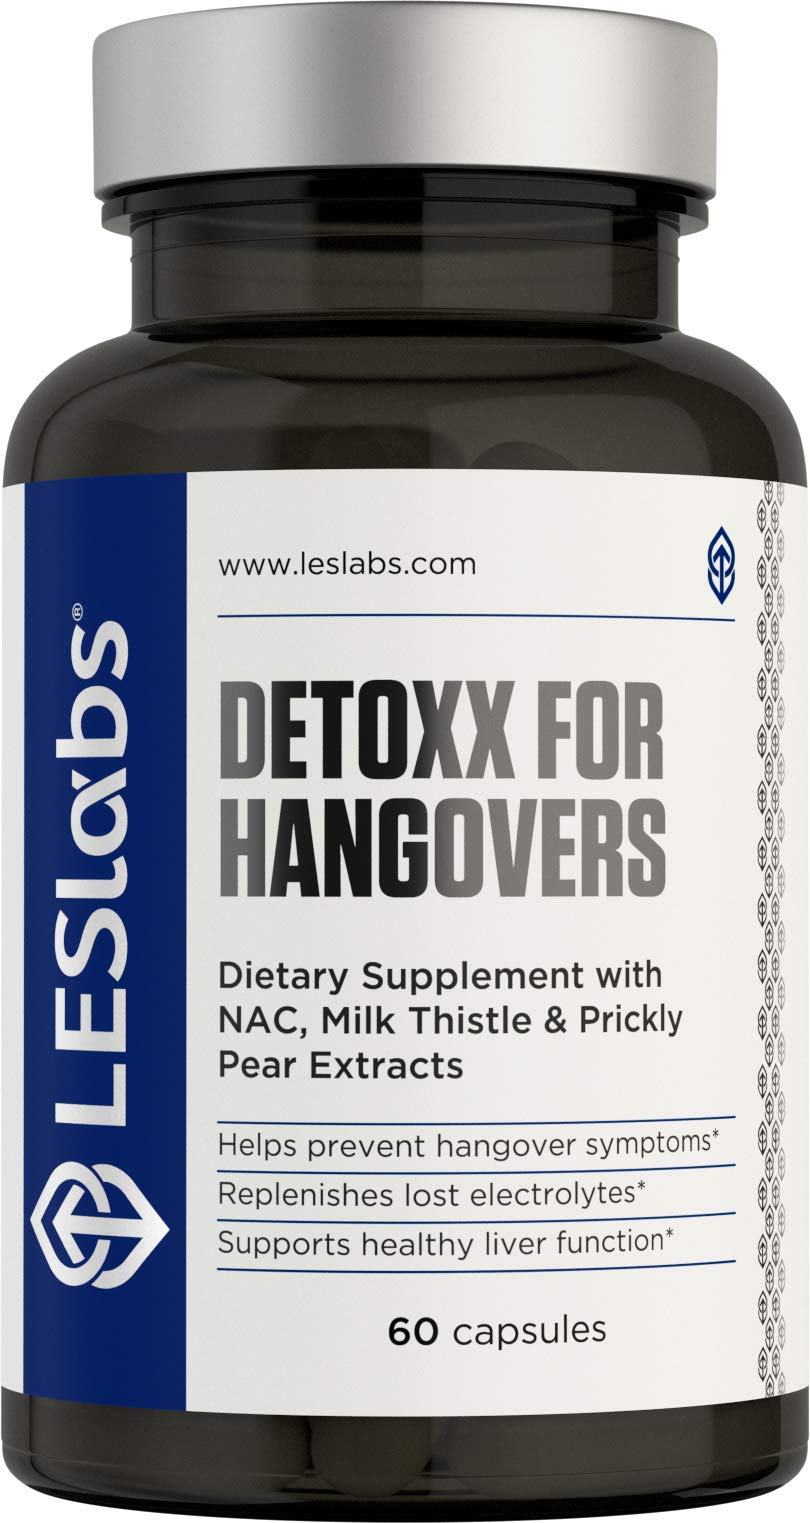 LES Labs DeToxx for Hangovers, Natural Supplement for Liver Support & Electrolyte Replenishment, 60 Capsules